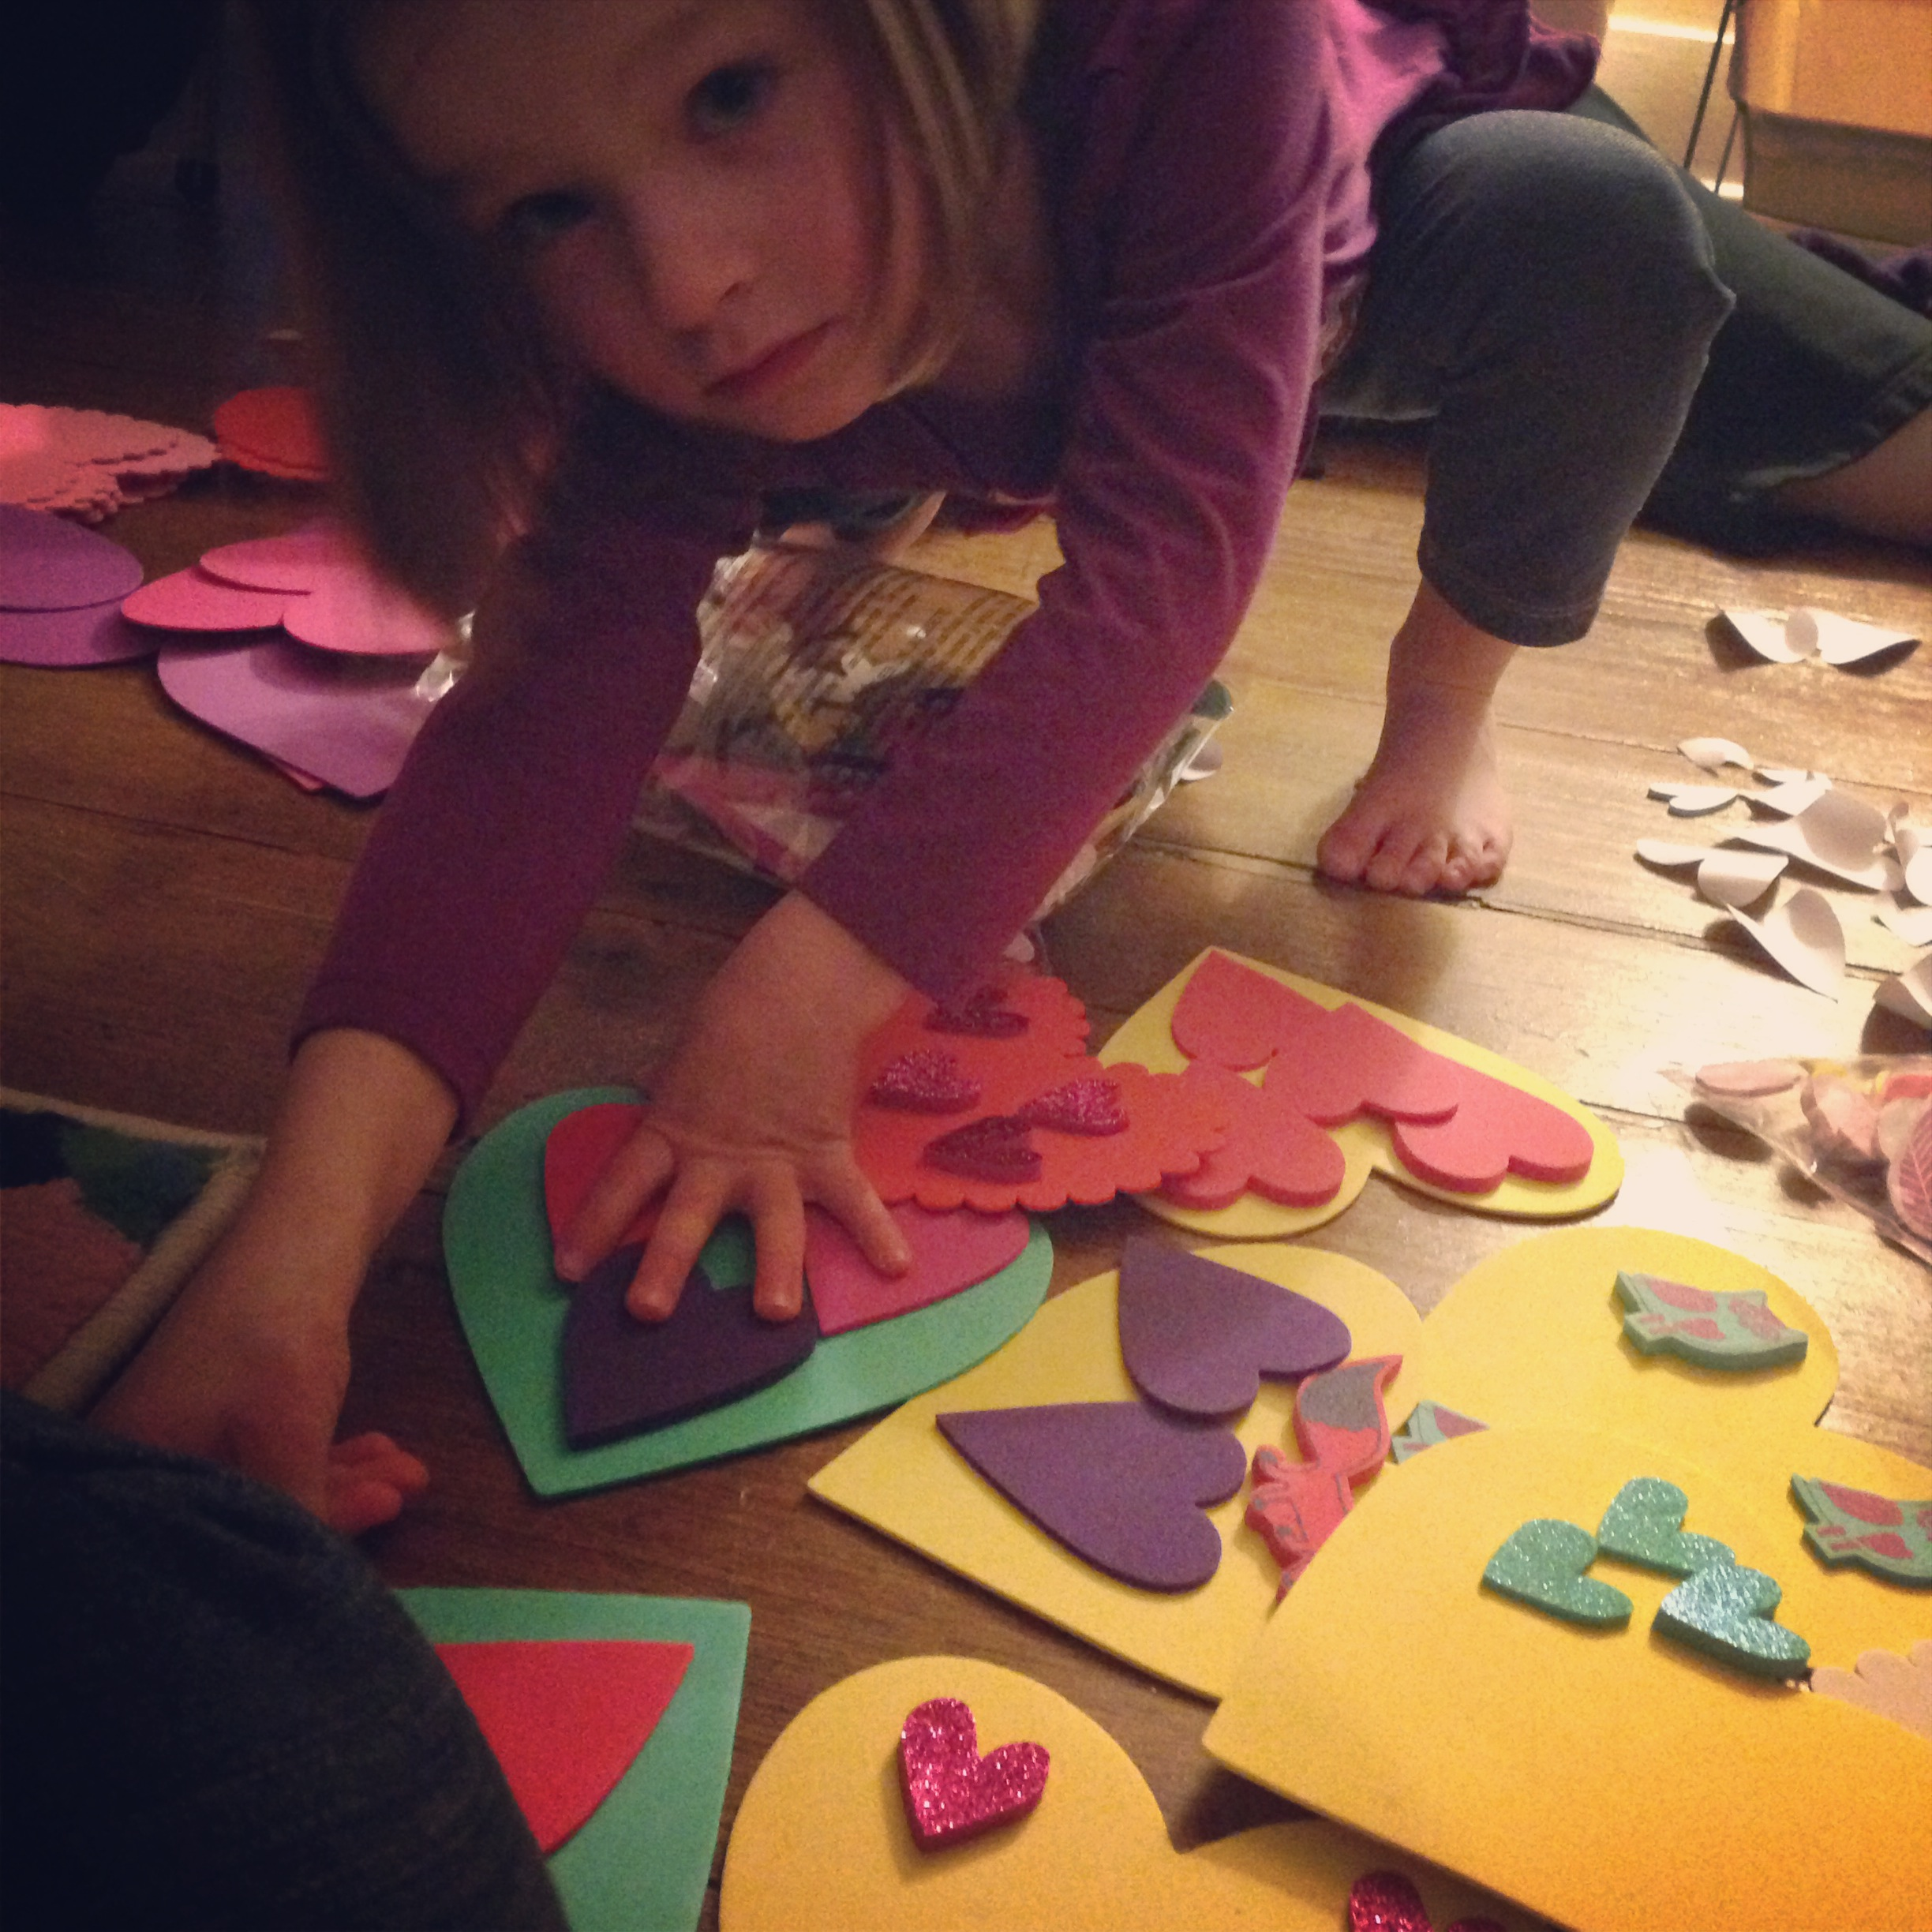 Eve the valentine artist